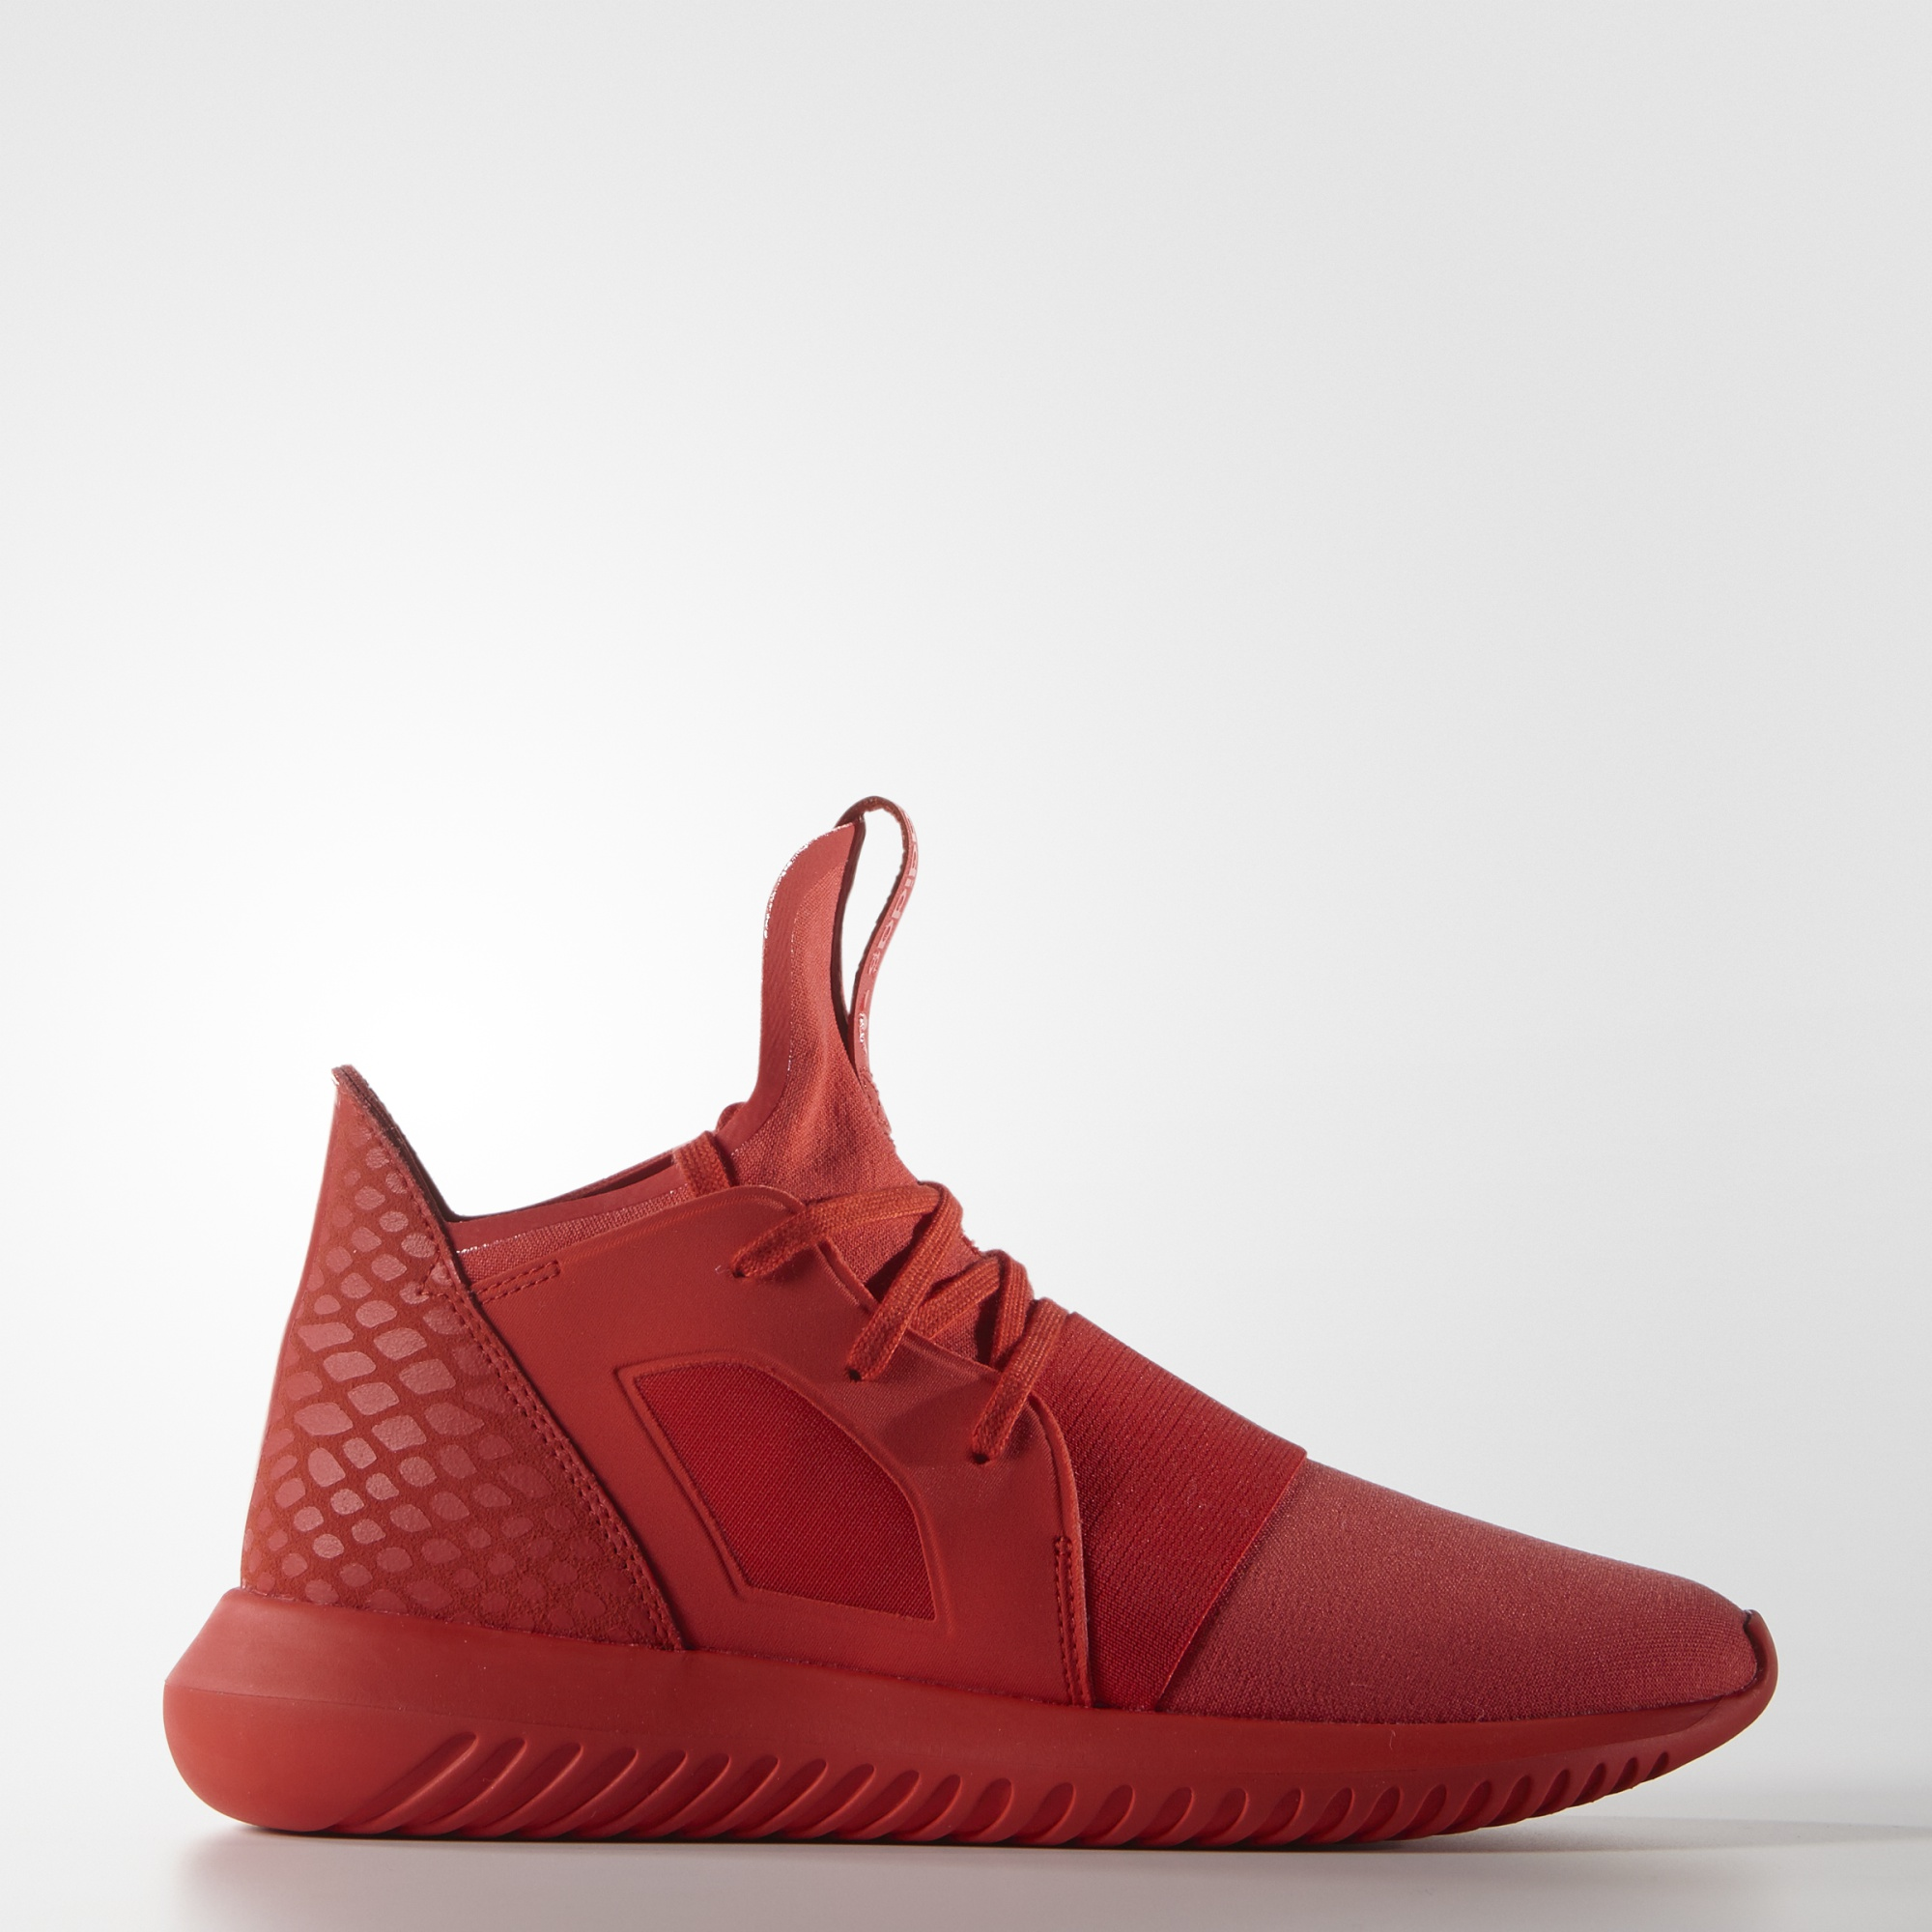 timeless design a39f1 99ad3 adidas Tubular Defiant Shoes - Red   adidas US